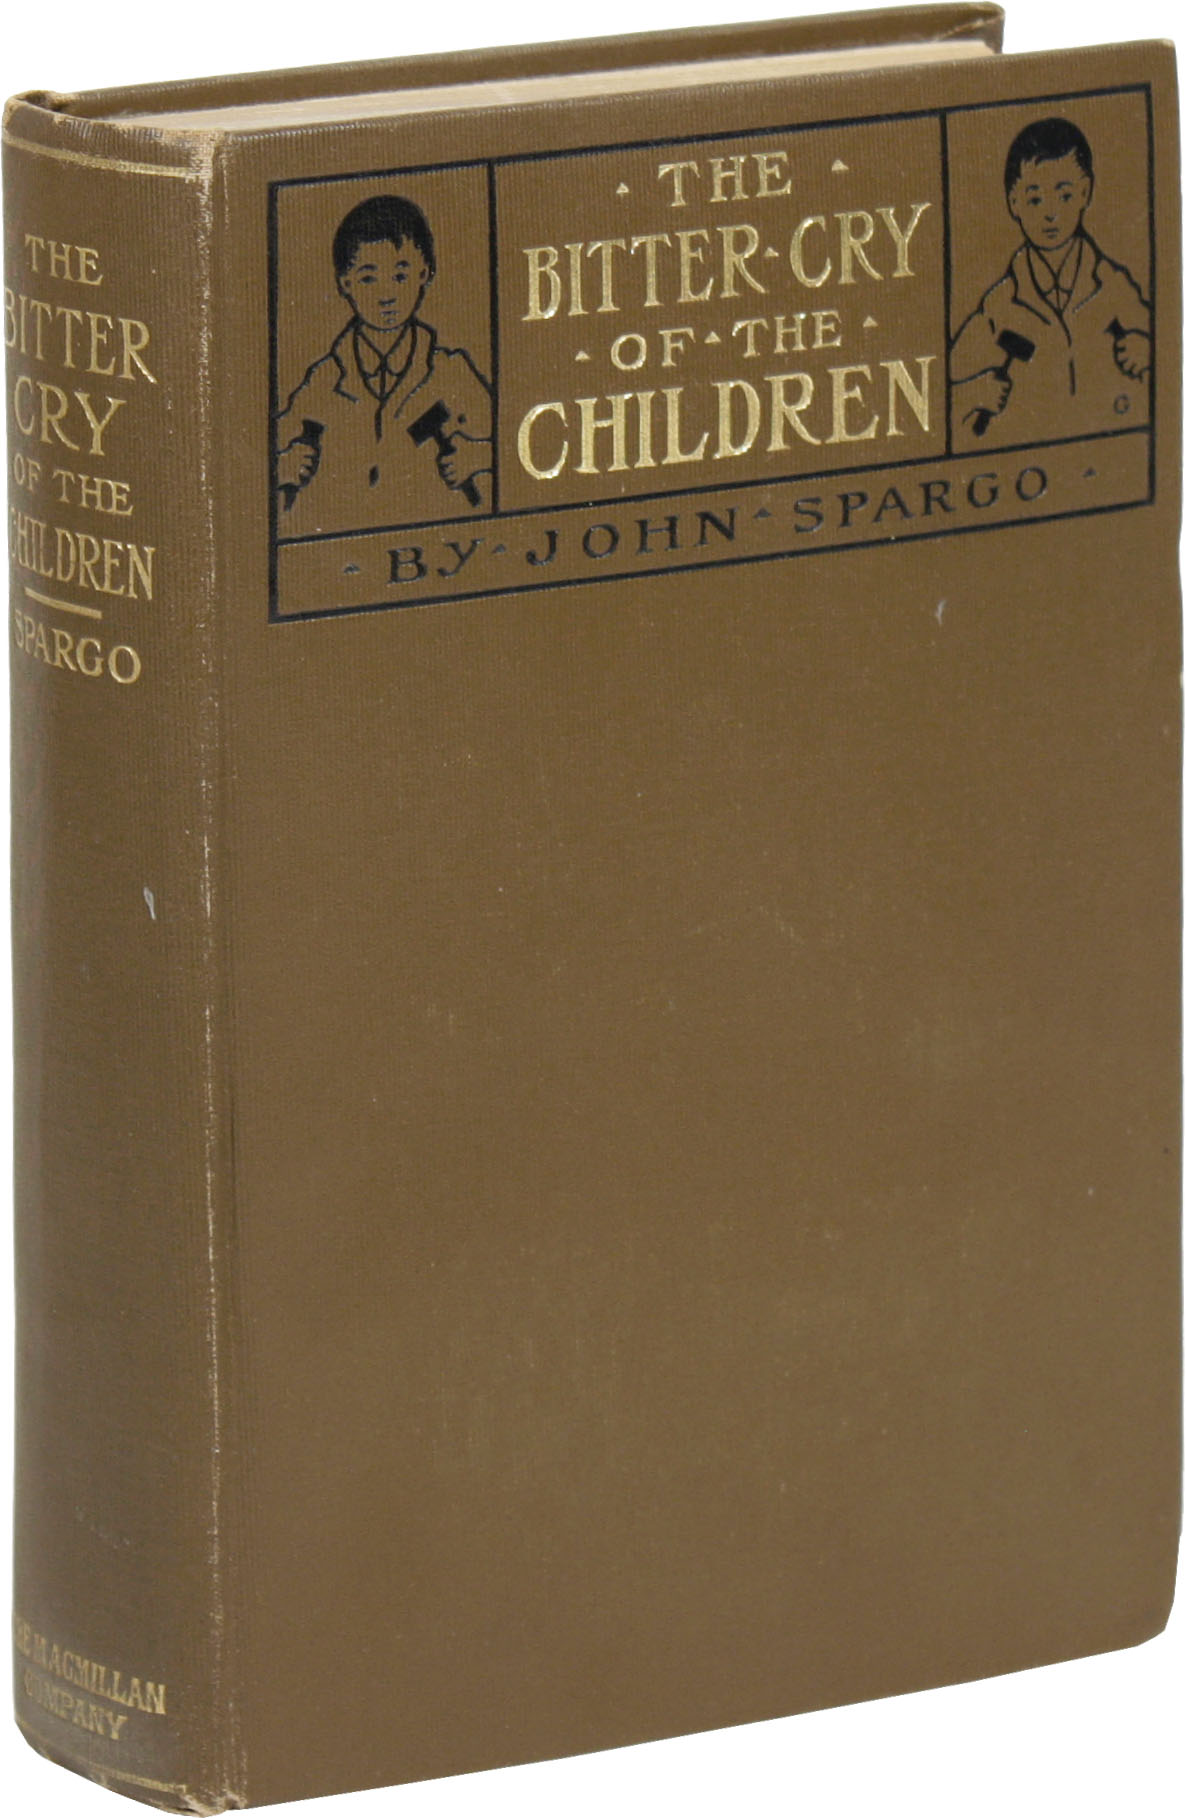 The Bitter Cry of the Children. SOCIALISM - CHILD LABOR, John SPARGO.